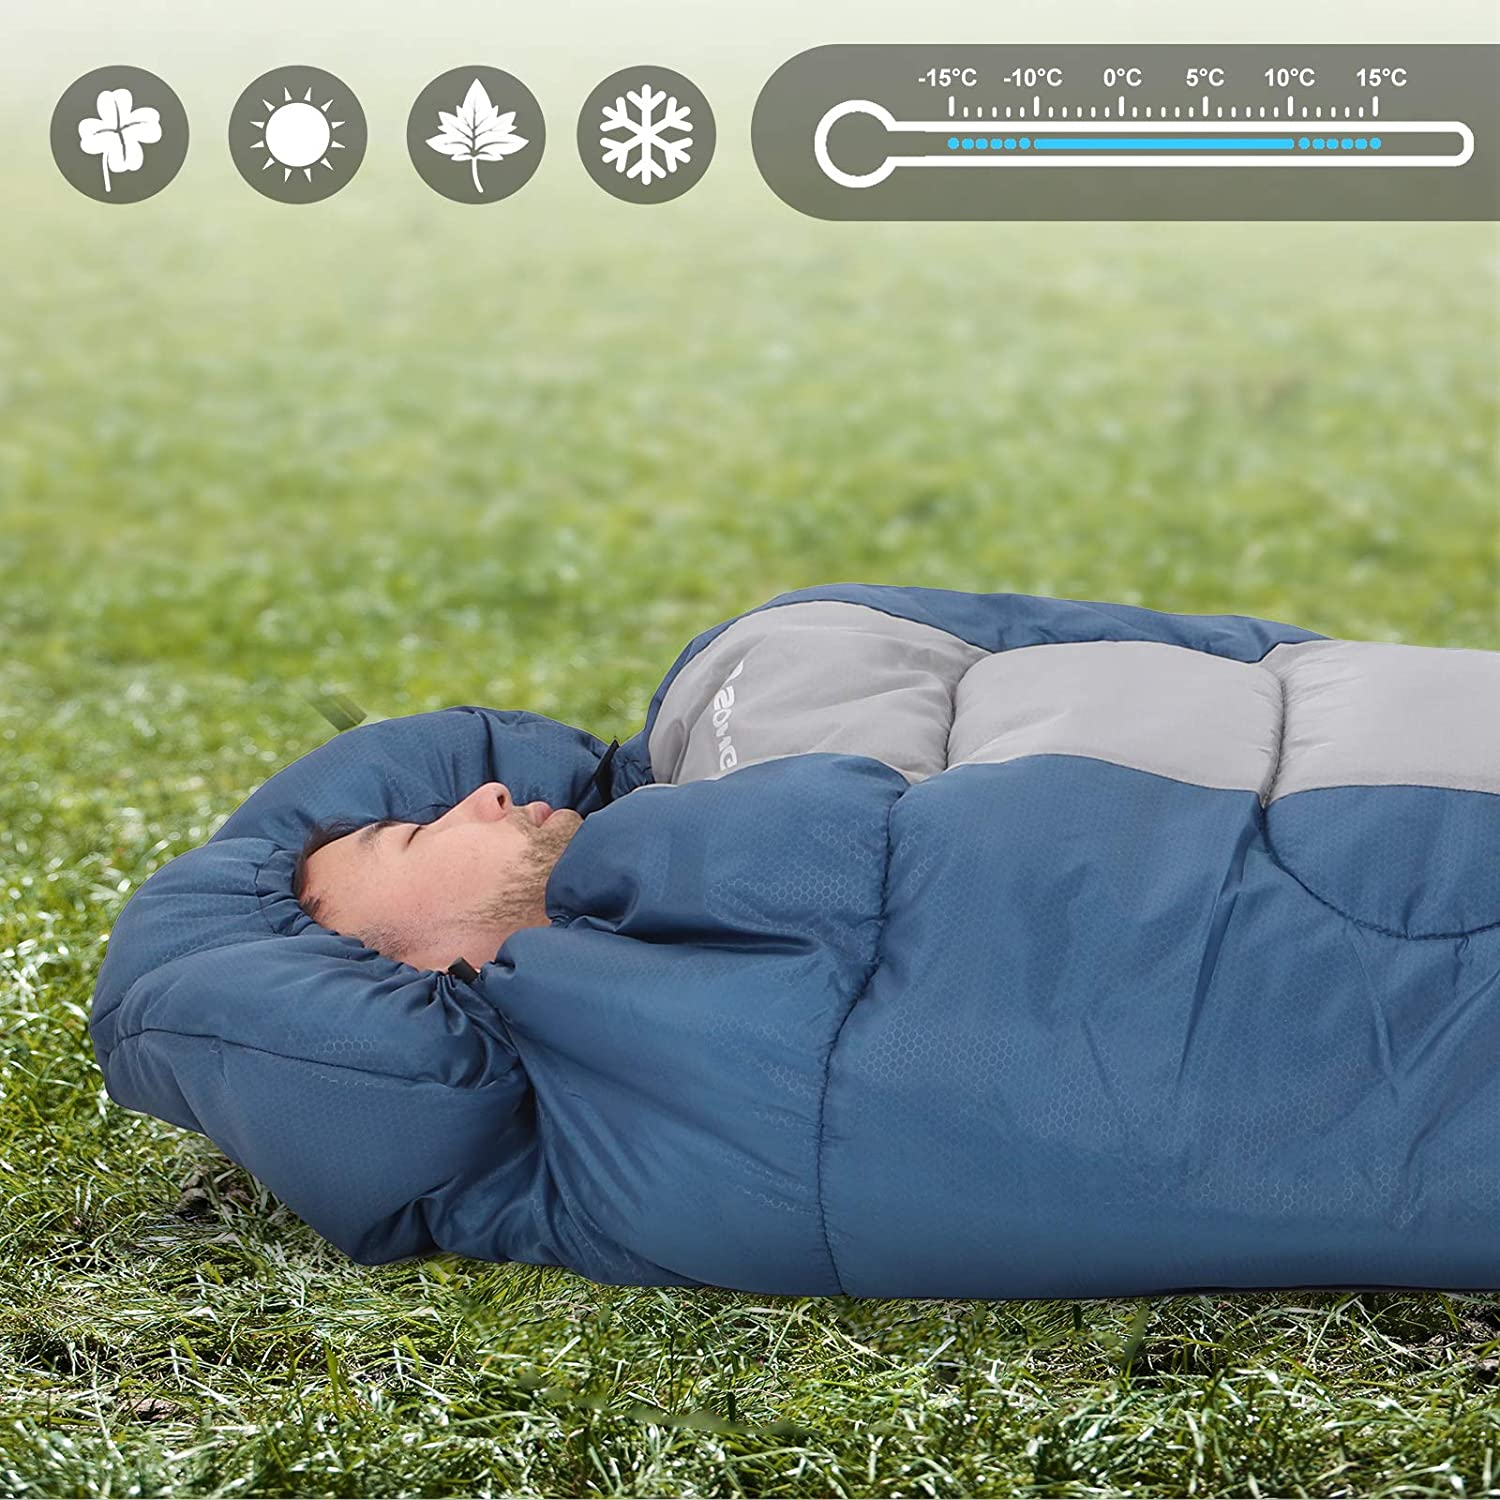 Ideal Temp 5-15/°C 220 x 84 cm Easy to Carry 3-4 Seasons Compact Hiking for Camping Lightweight Travelling SONGMICS Wide Camping Sleeping Bag with Compression Sack